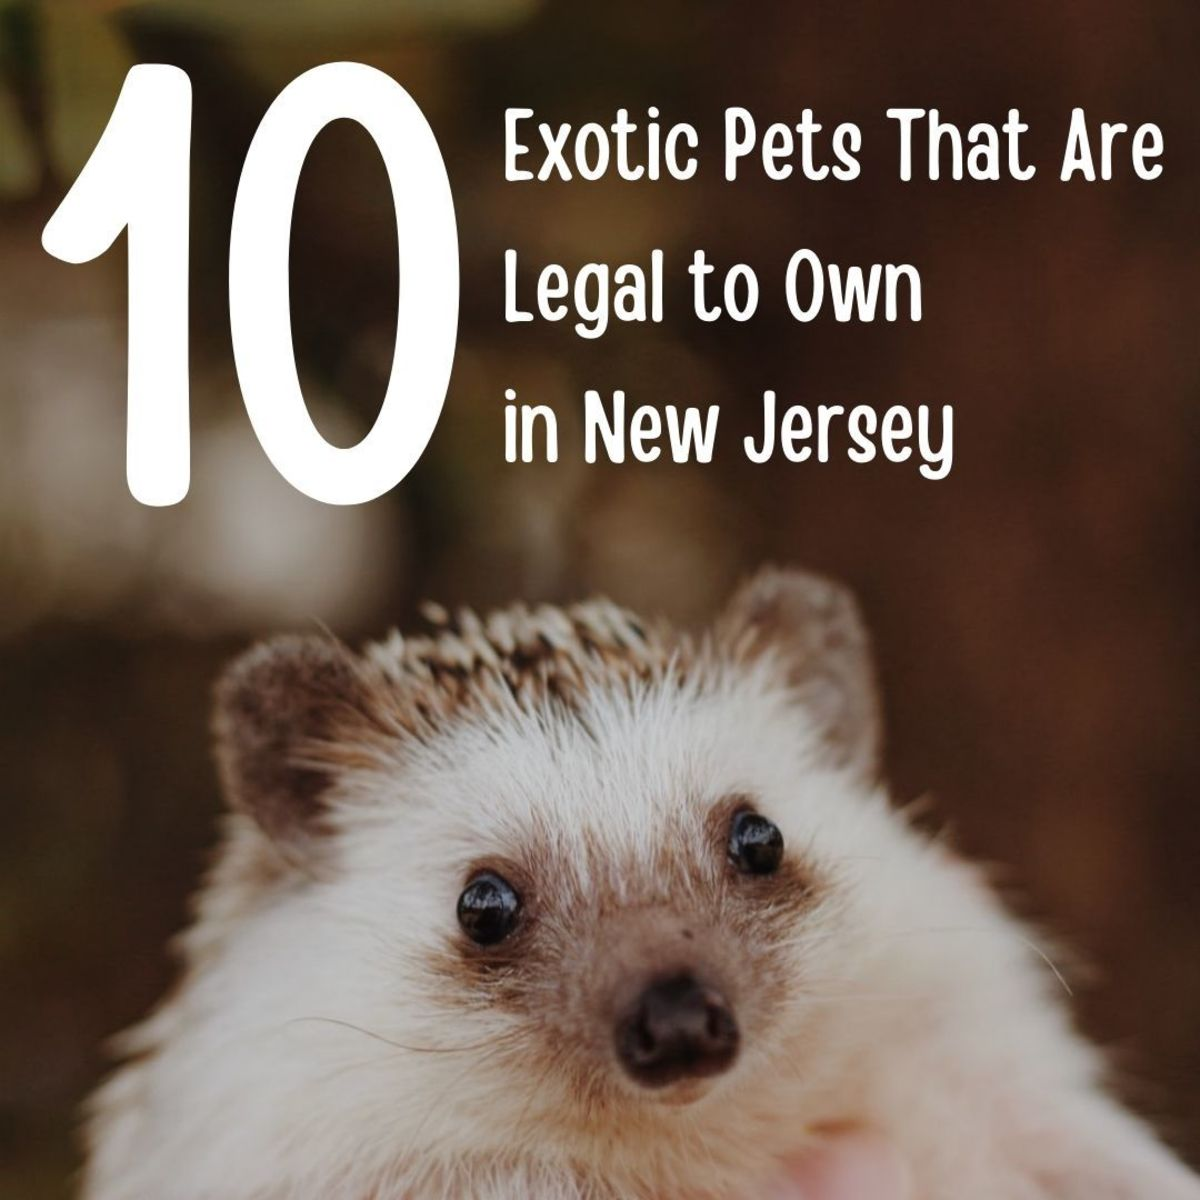 No two states are alike when it comes to the rules for keeping exotic pets.